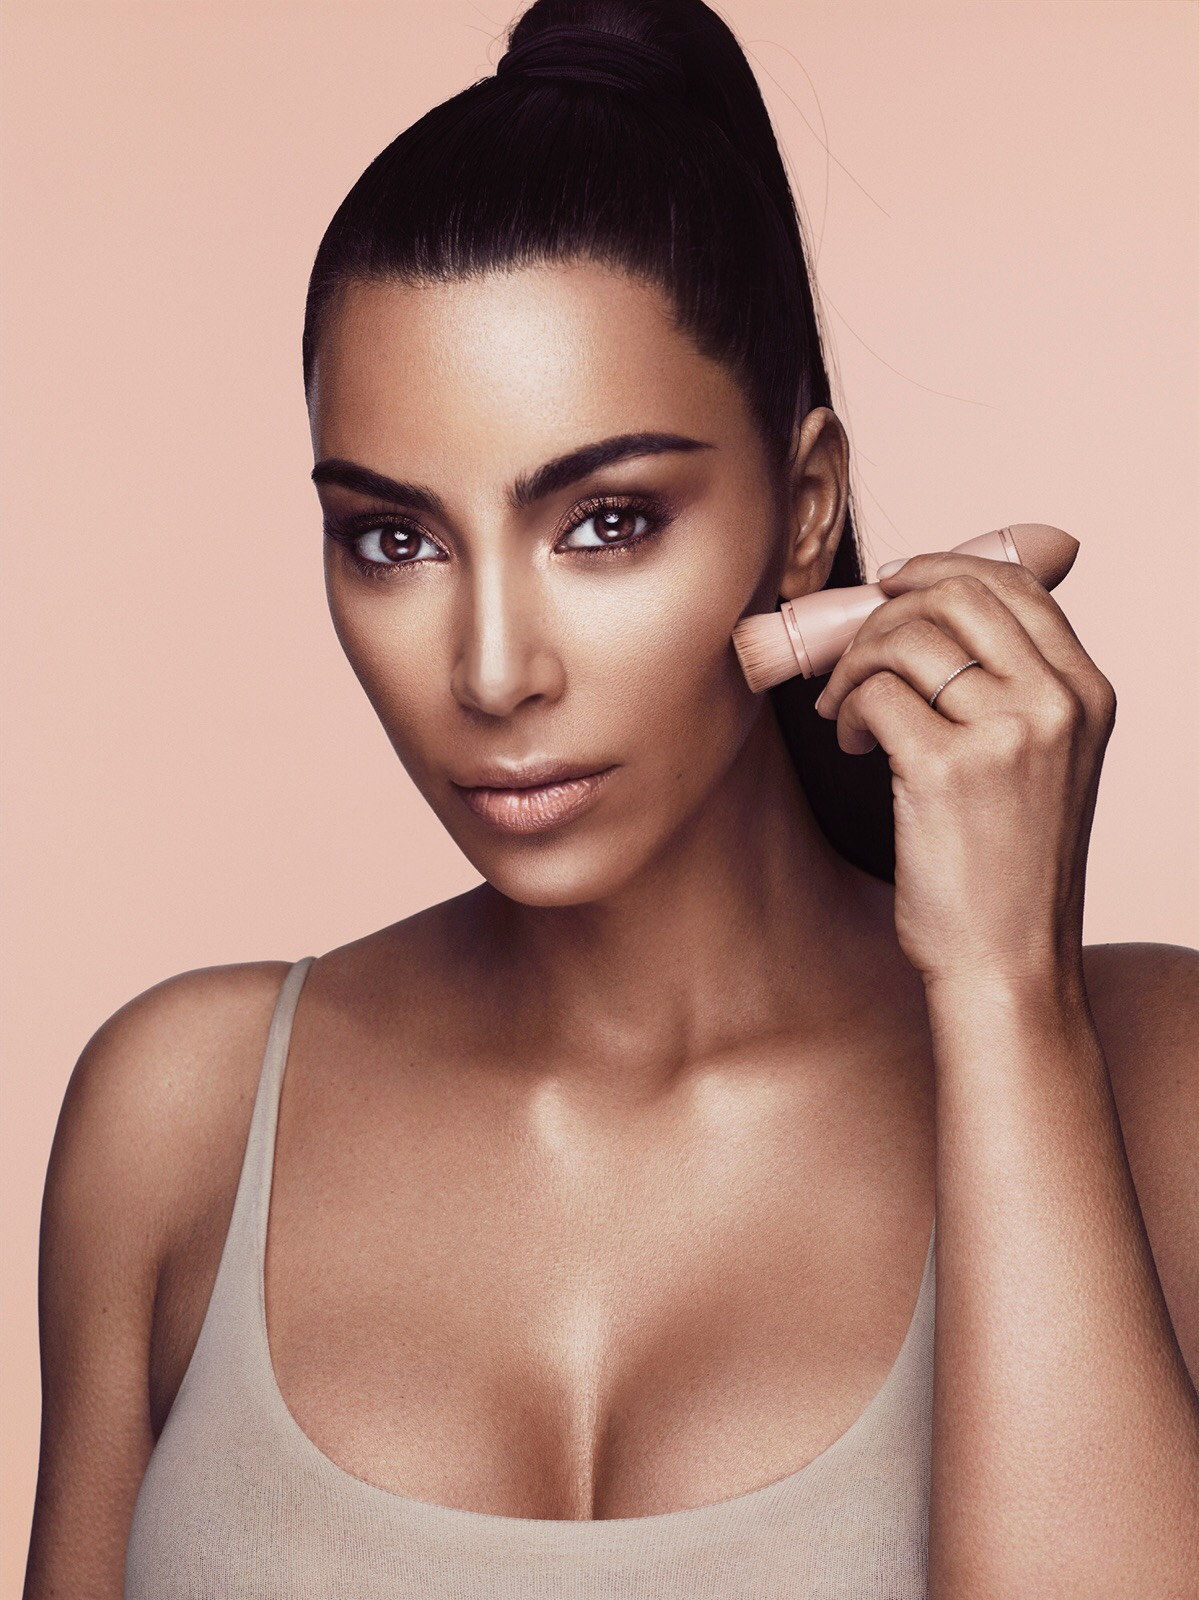 Kim Kardashian's KKW Makeup Line Expected to Net $14 Million on Day